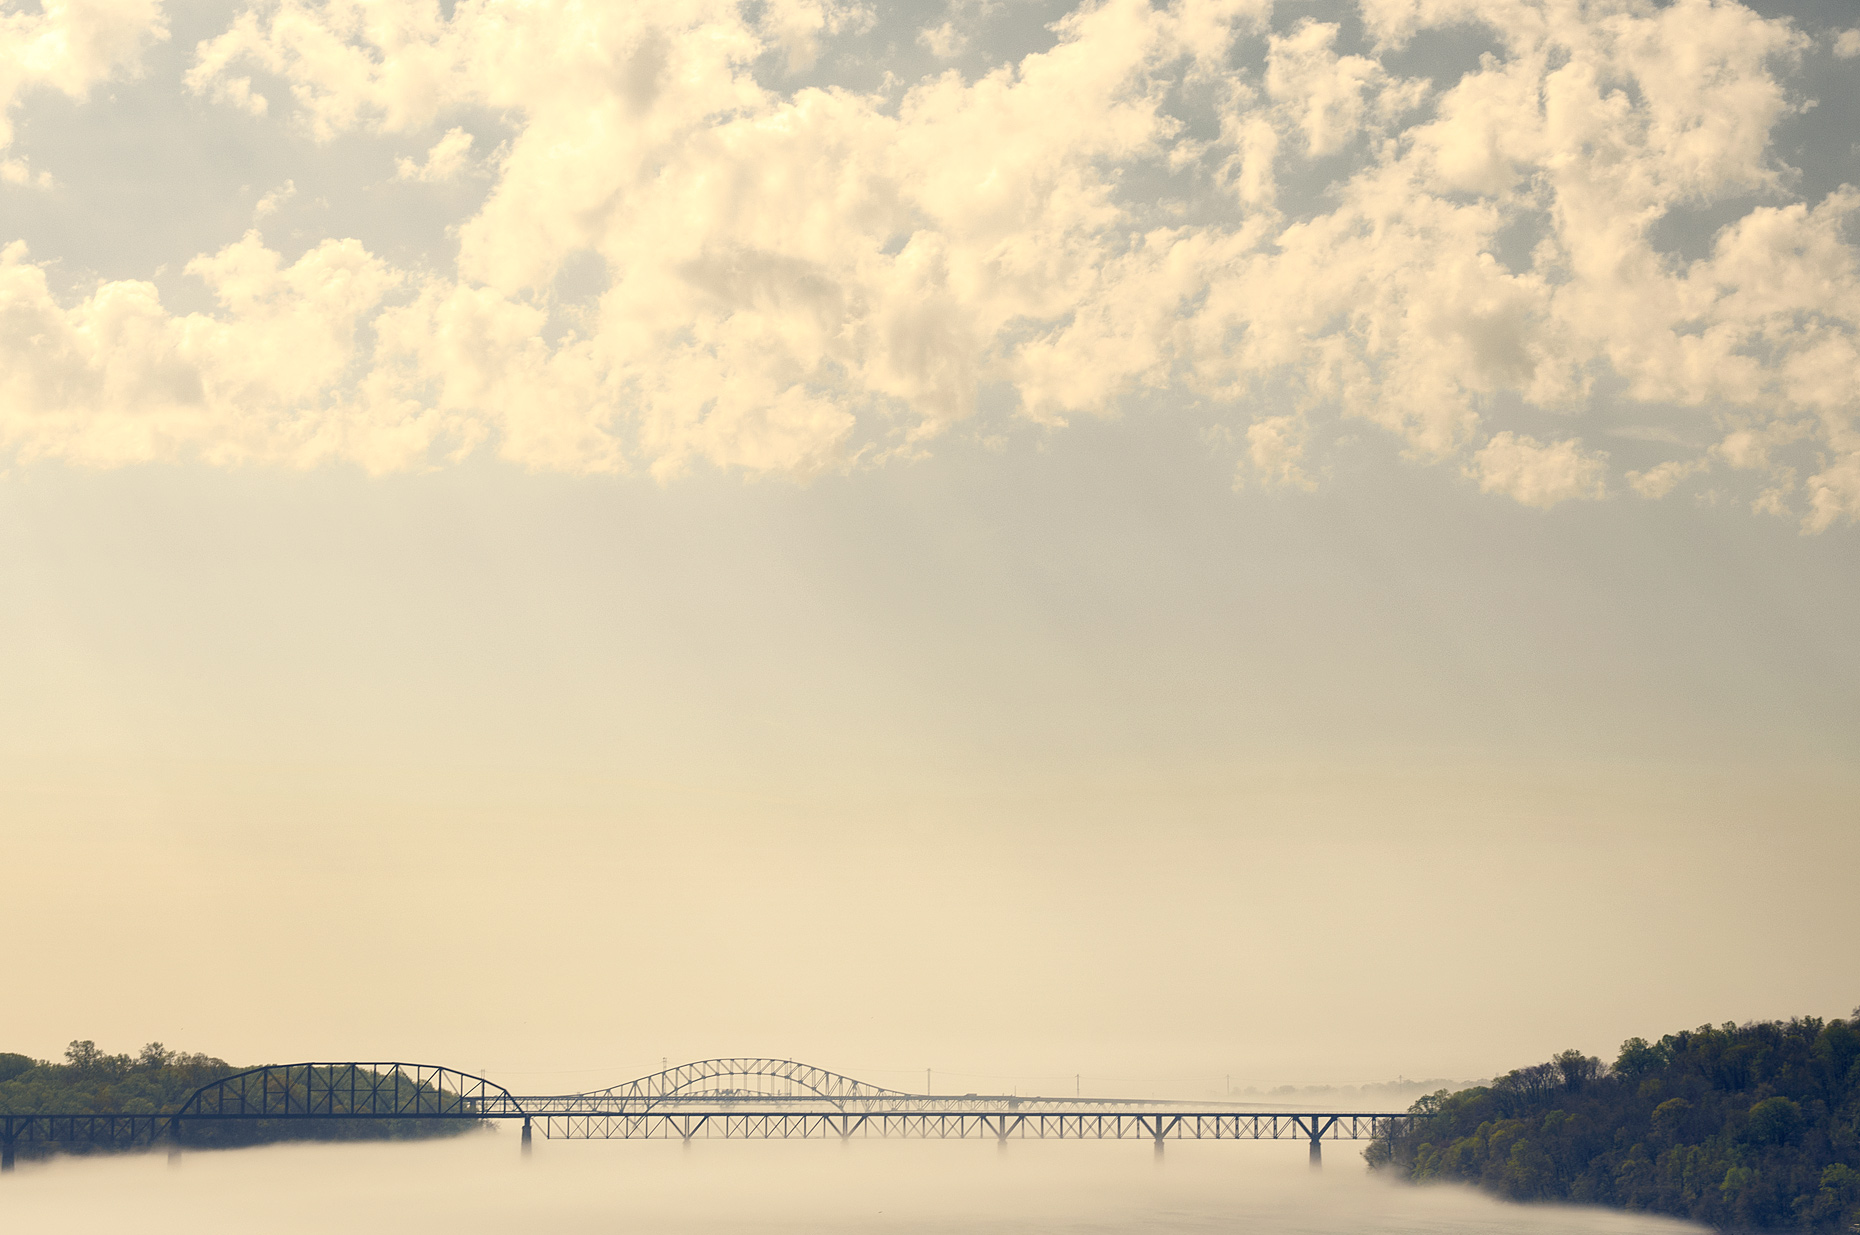 Places-susquehanna-river-bridge-maryland